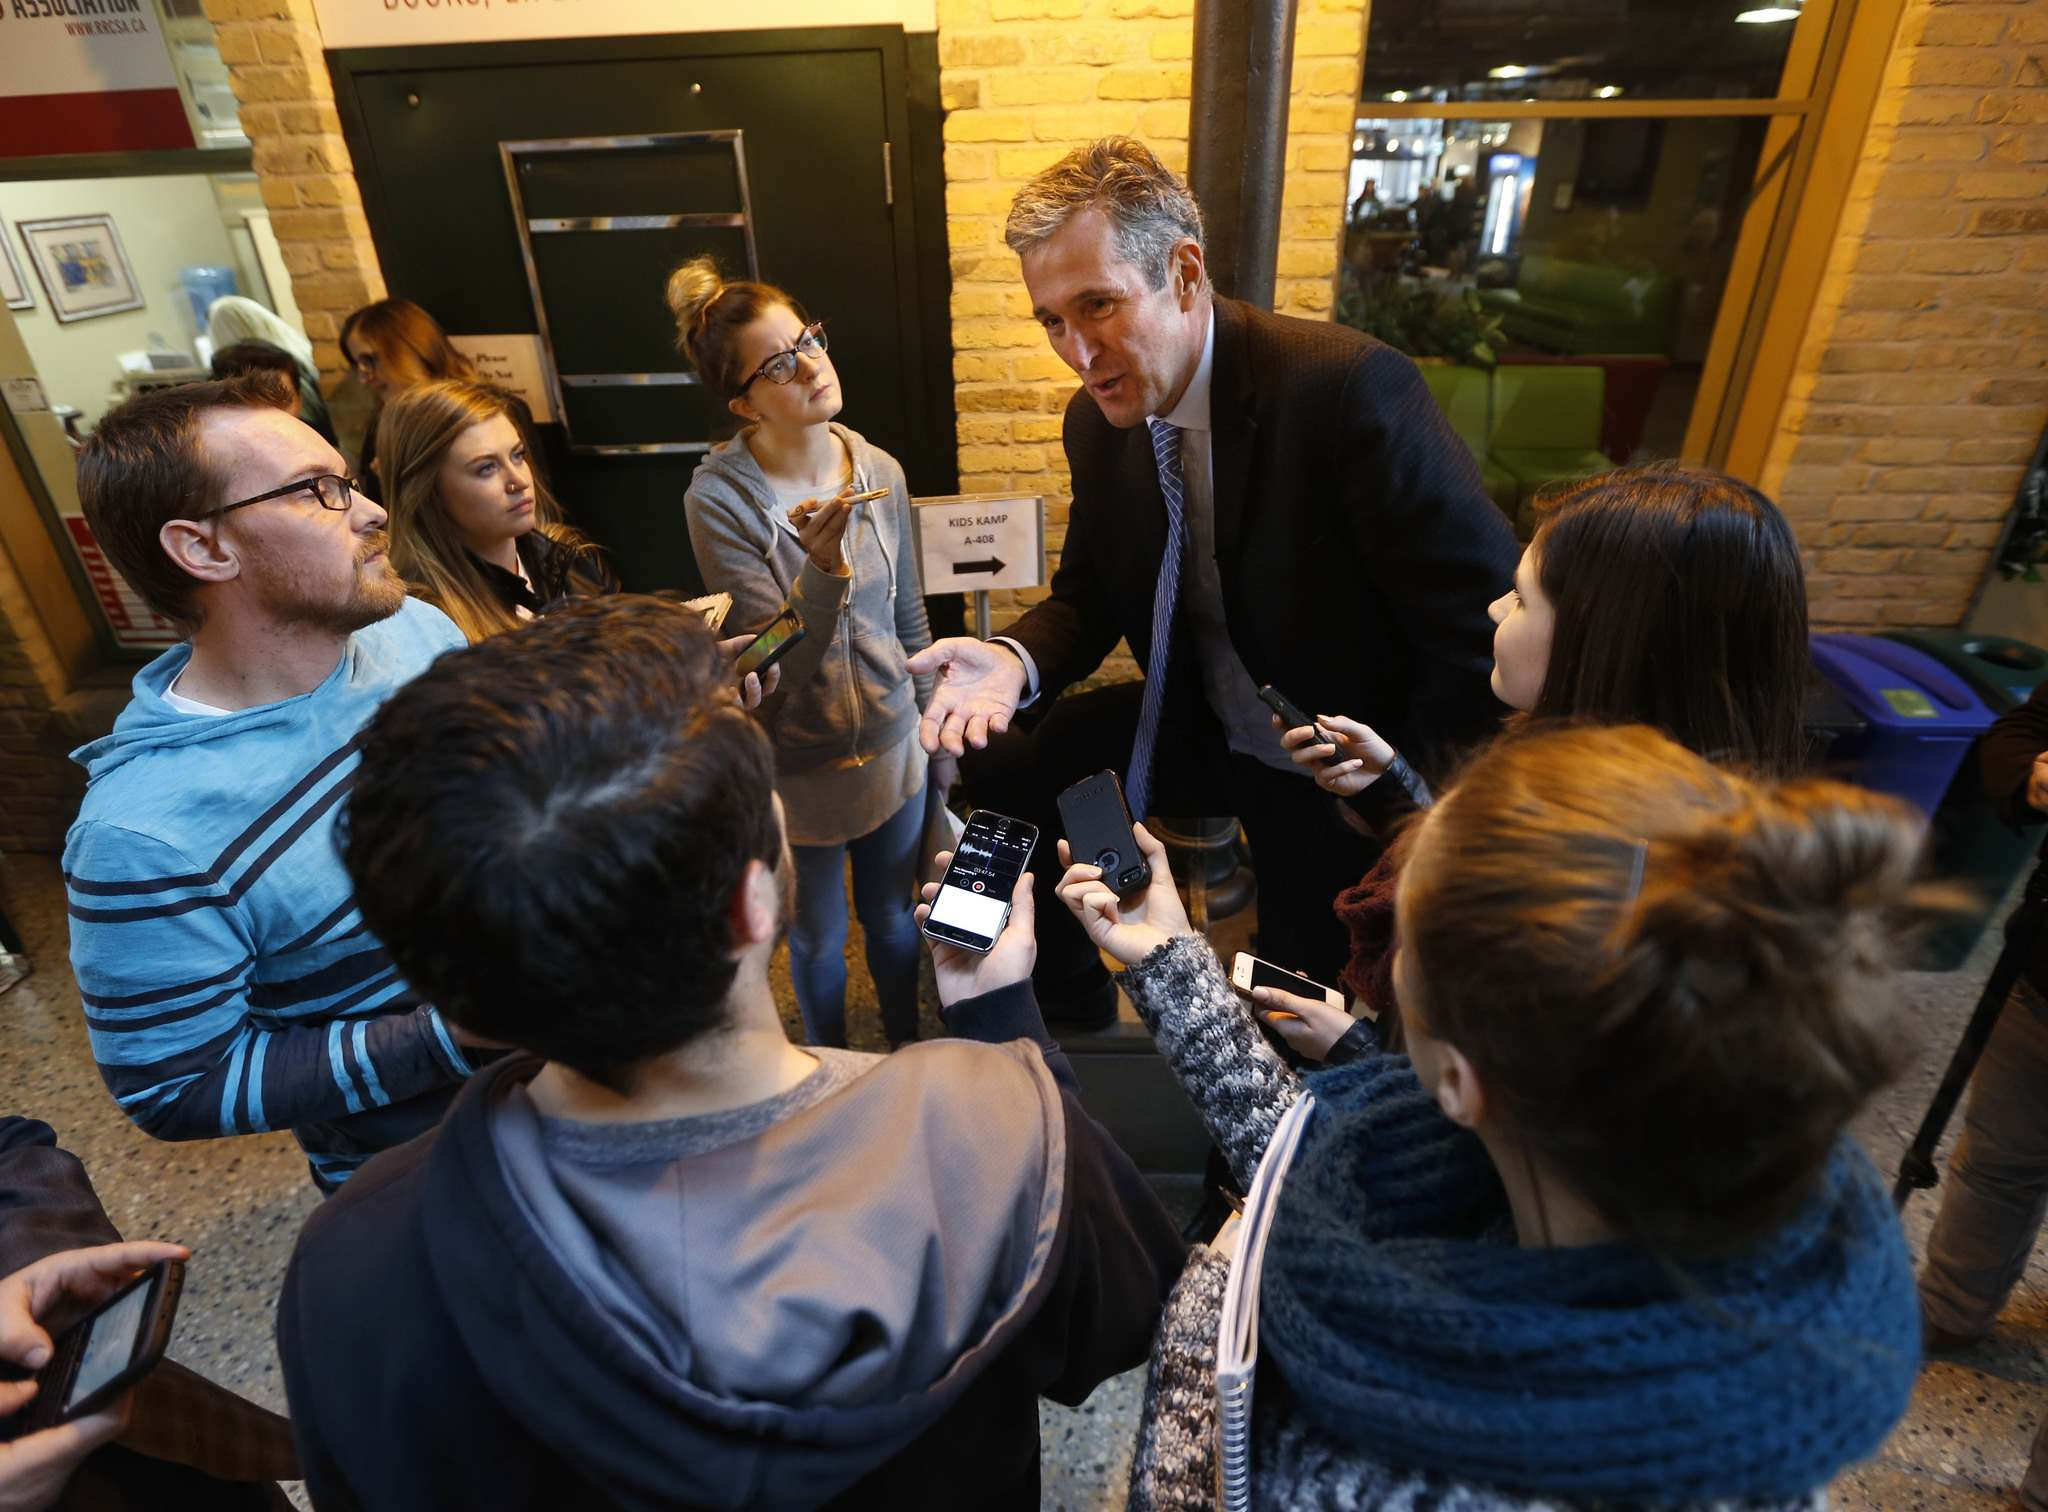 WAYNE GLOWACKI / WINNIPEG FREE PRESS</p><p>Red River College journalism students interview Brian Pallister. Pallister is known to possess a hard-edged public persona, but the Tory leader has shown a more relaxed side on the campaign trail.</p></p>